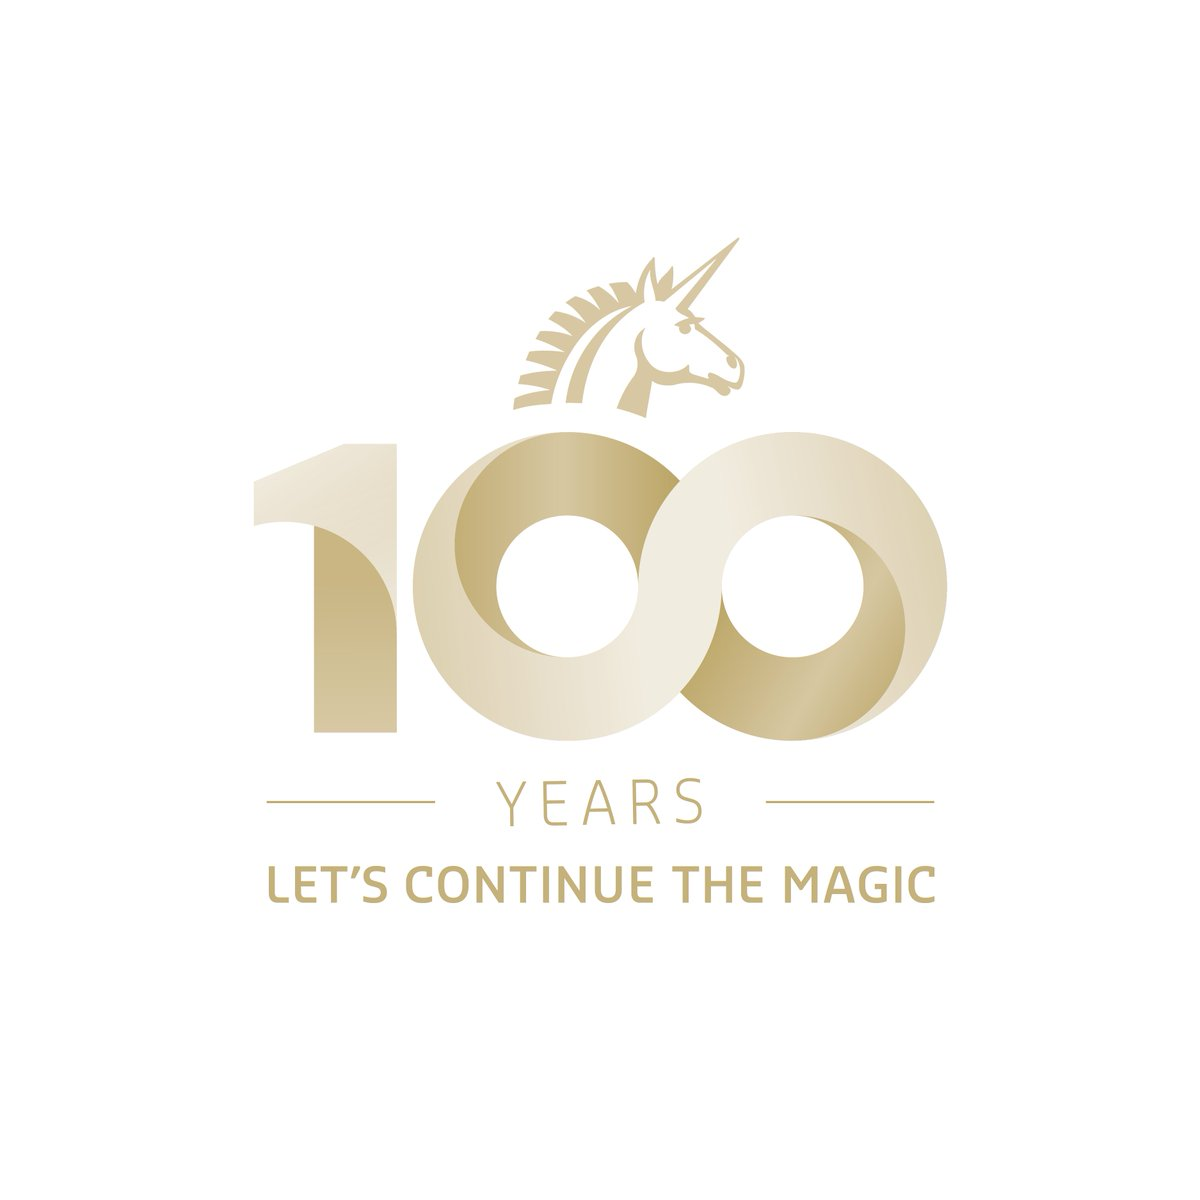 Puratos is celebrating its 100th anniversary. At Puratos Canada we are proud to be part of this amazing milestone and we look forward to the next 100 years in terms of innovation, sustainability and collaboration with our customers! #puratosmagic  https://t.co/8mkyNJuuZK https://t.co/feIqcw4G9n